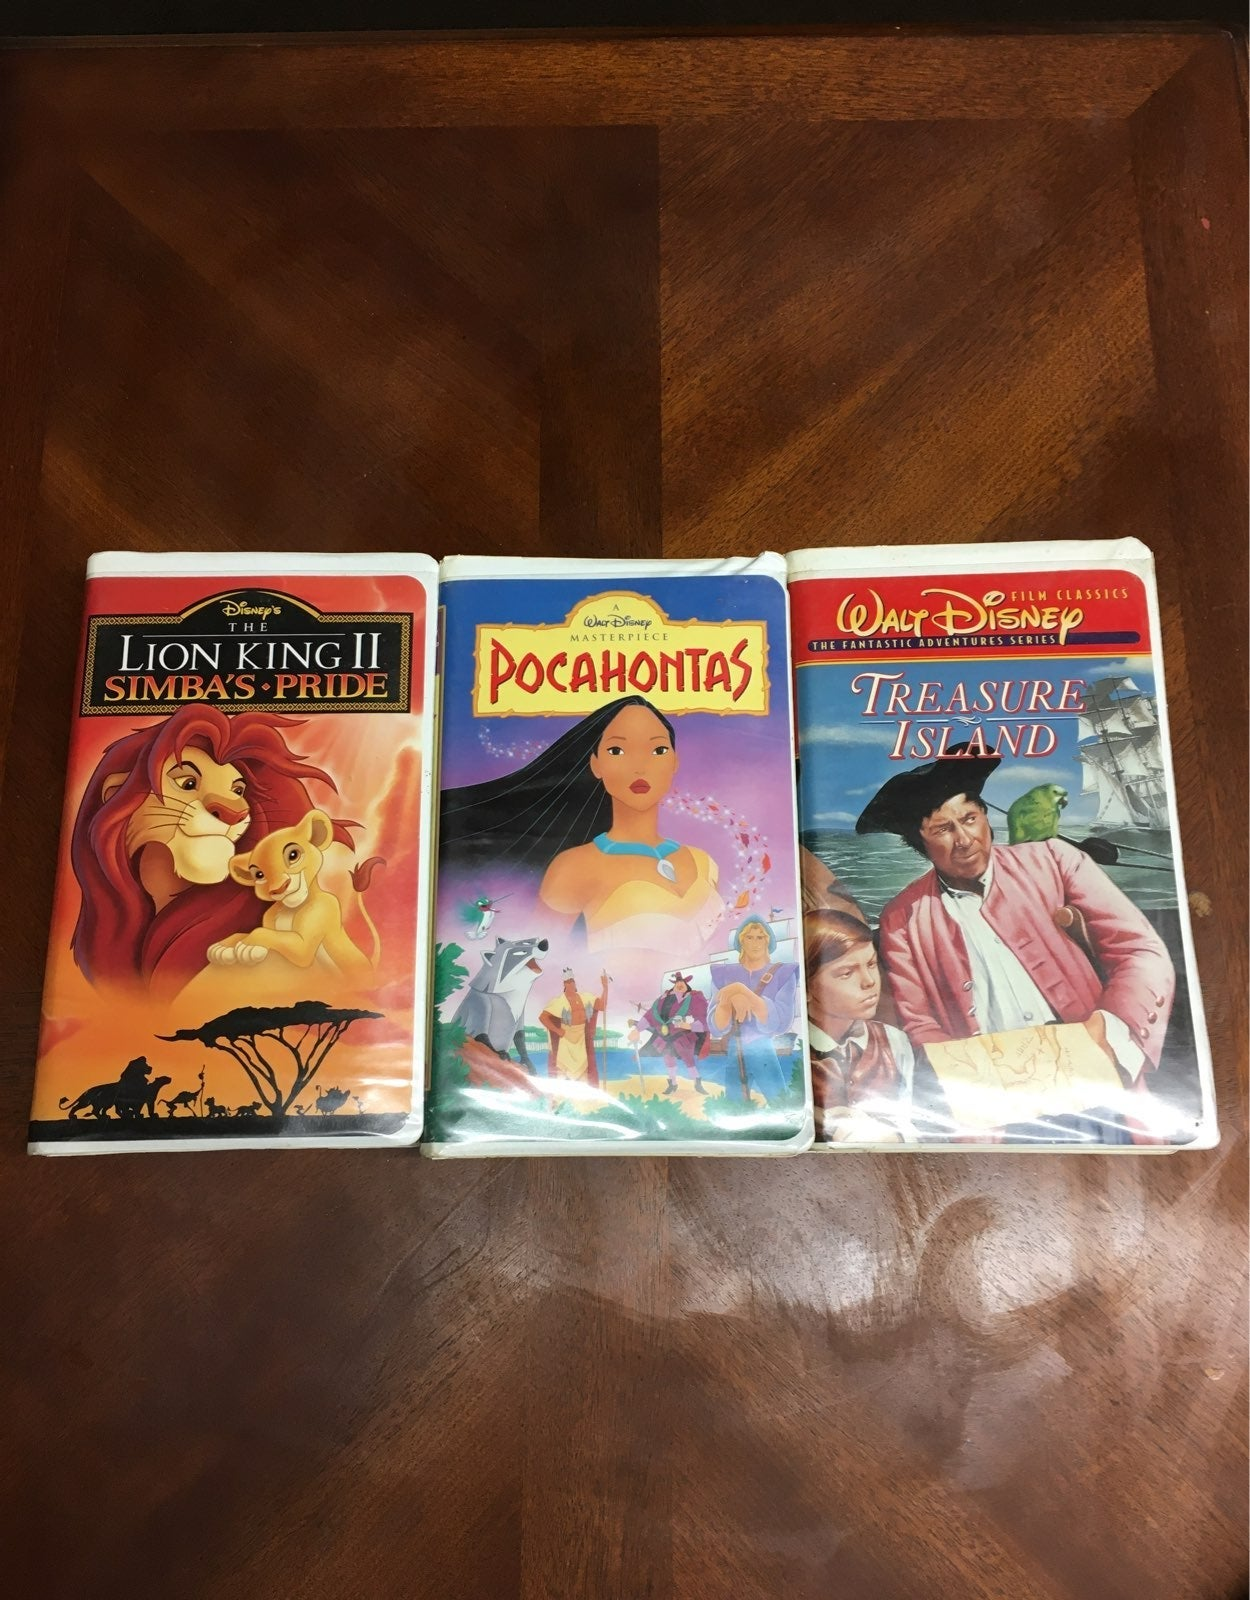 Walt Disney 3 Movies (VHS)